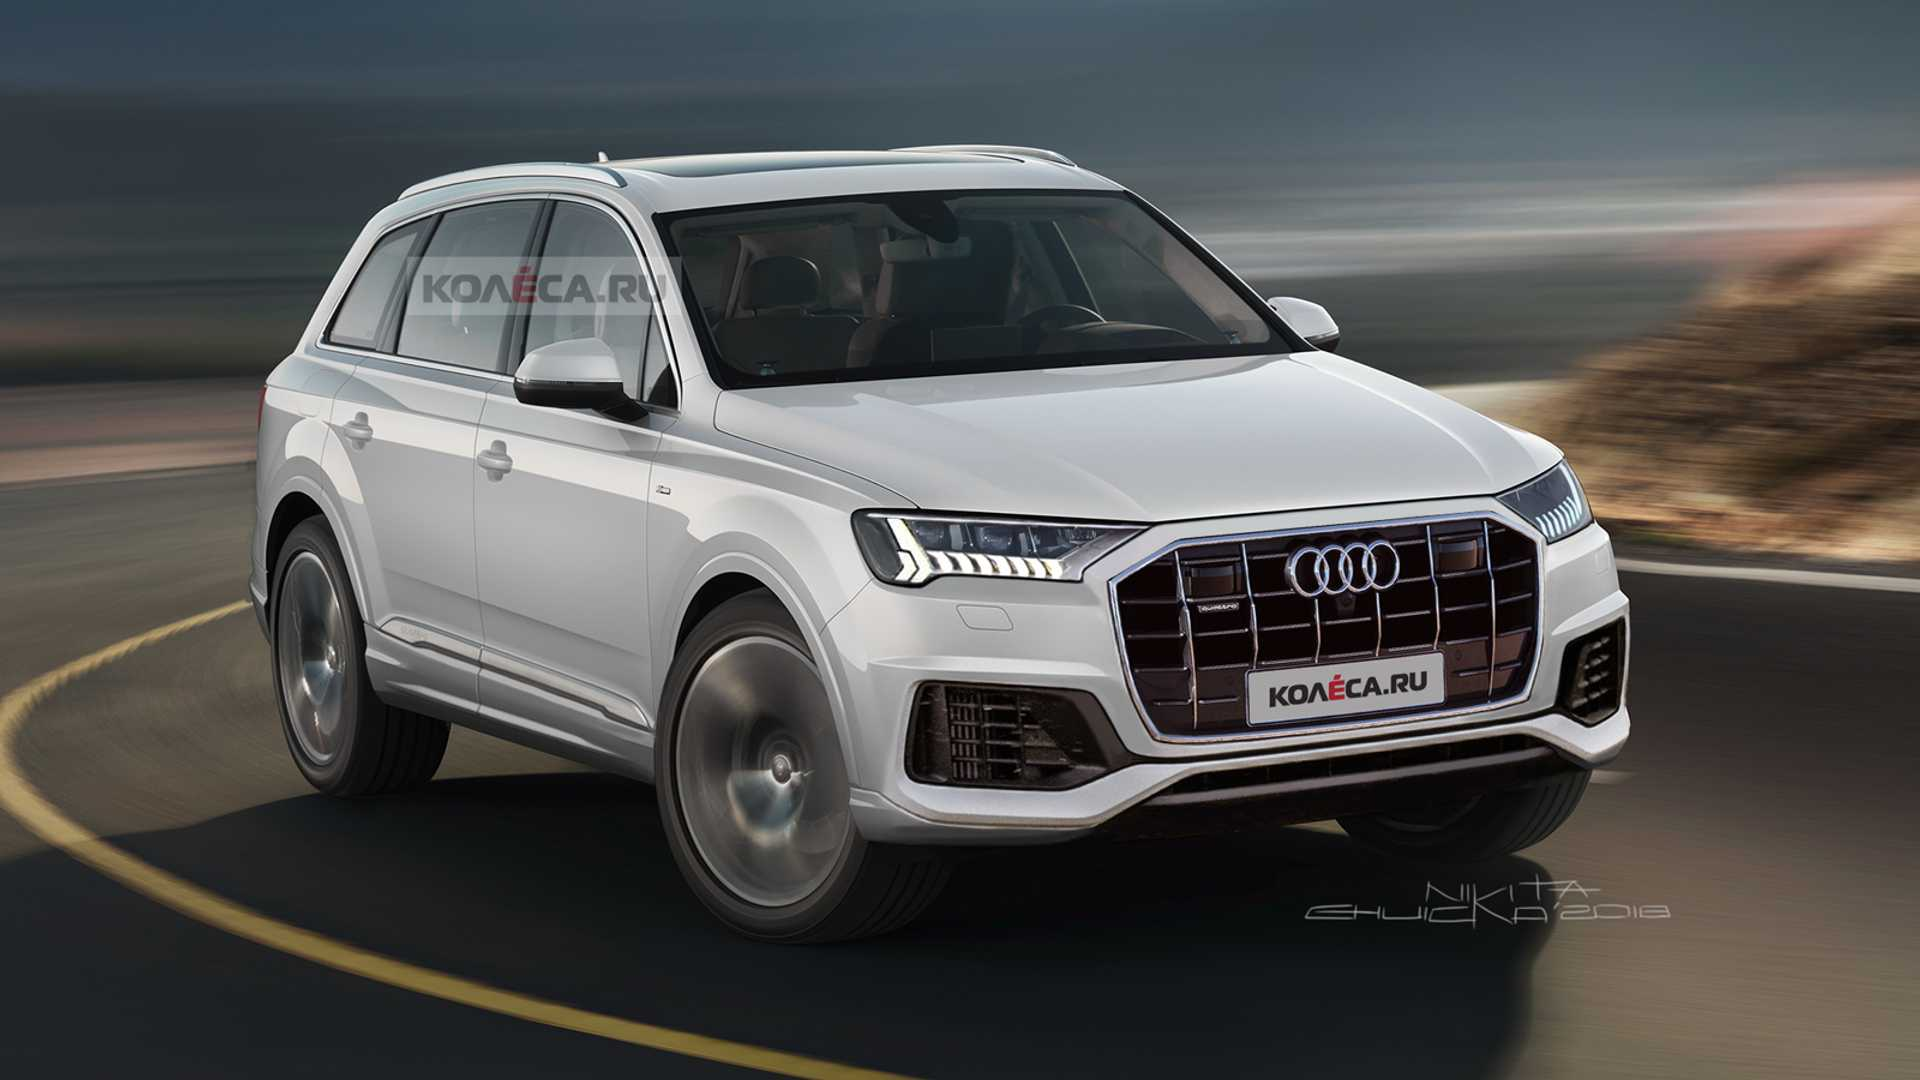 97 The Best 2020 Audi Q7 Release Date Concept And Review